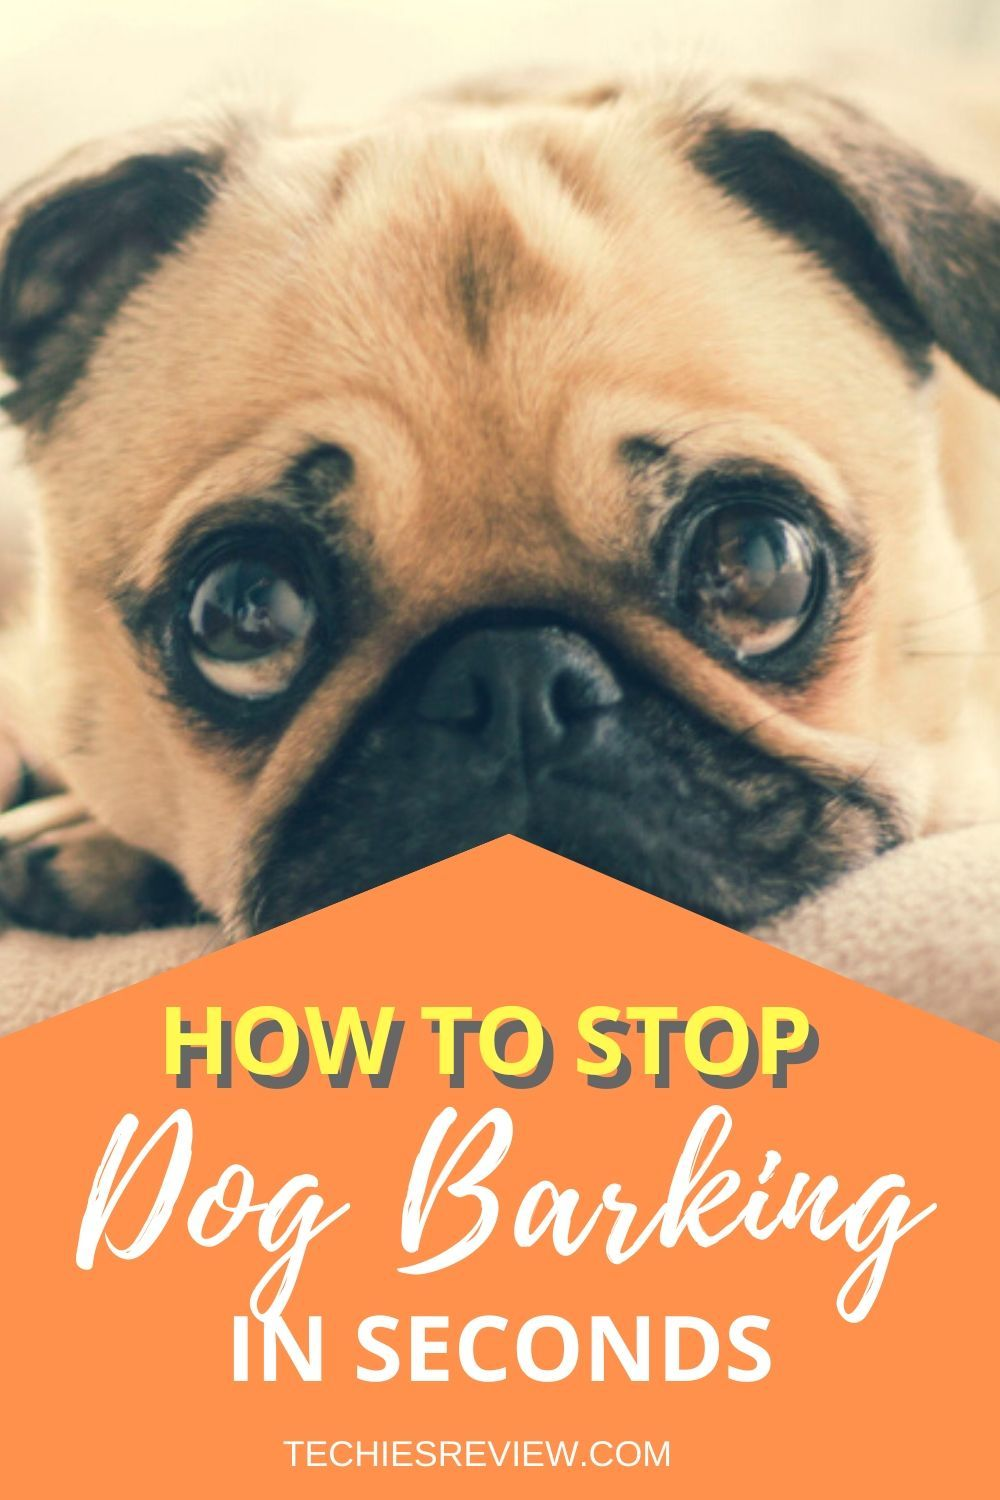 How to train your dog to stop barking by using the device